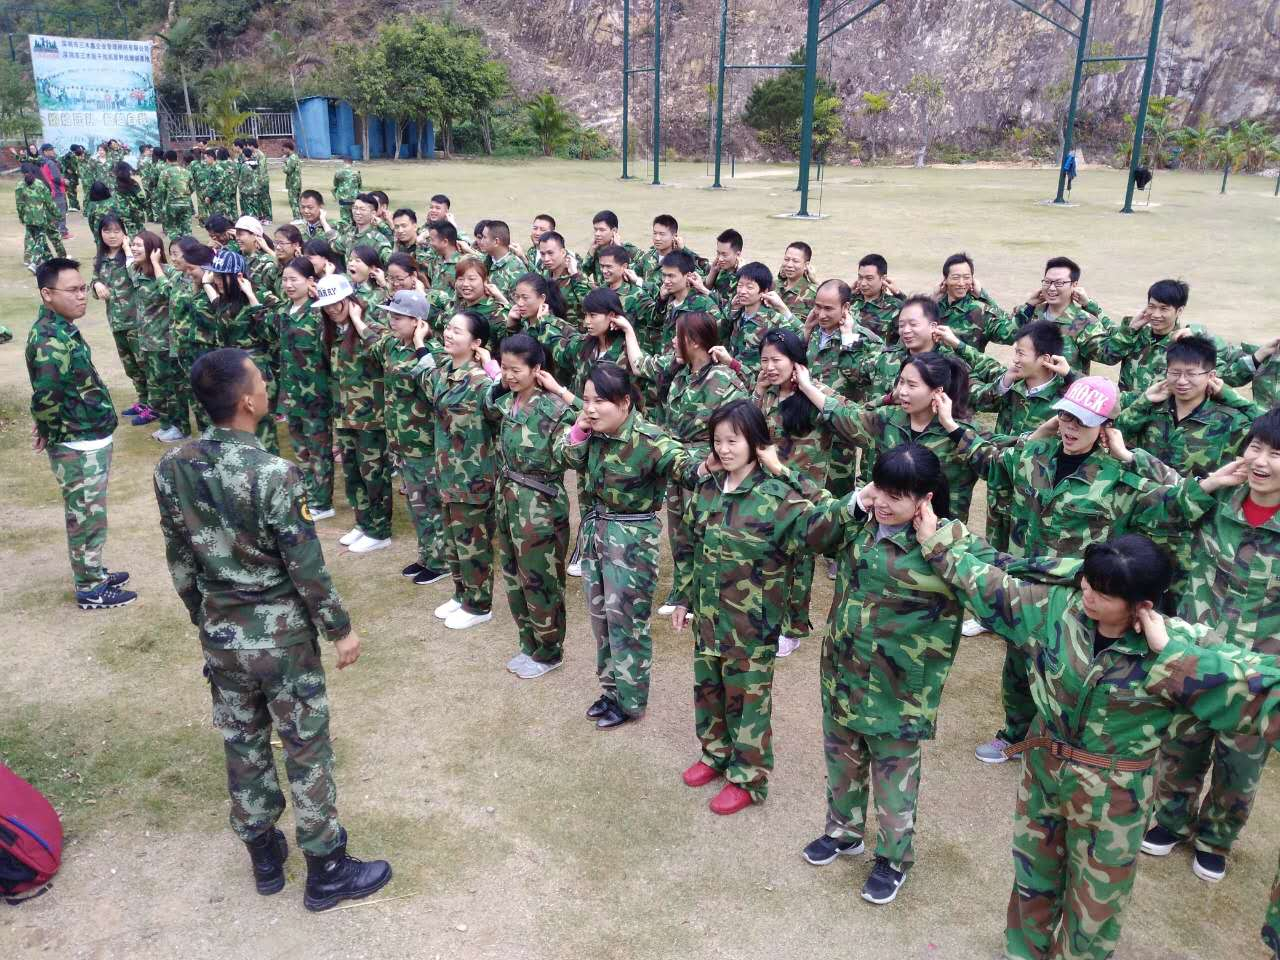 SINOPINE Technology group outdoor physical training activity